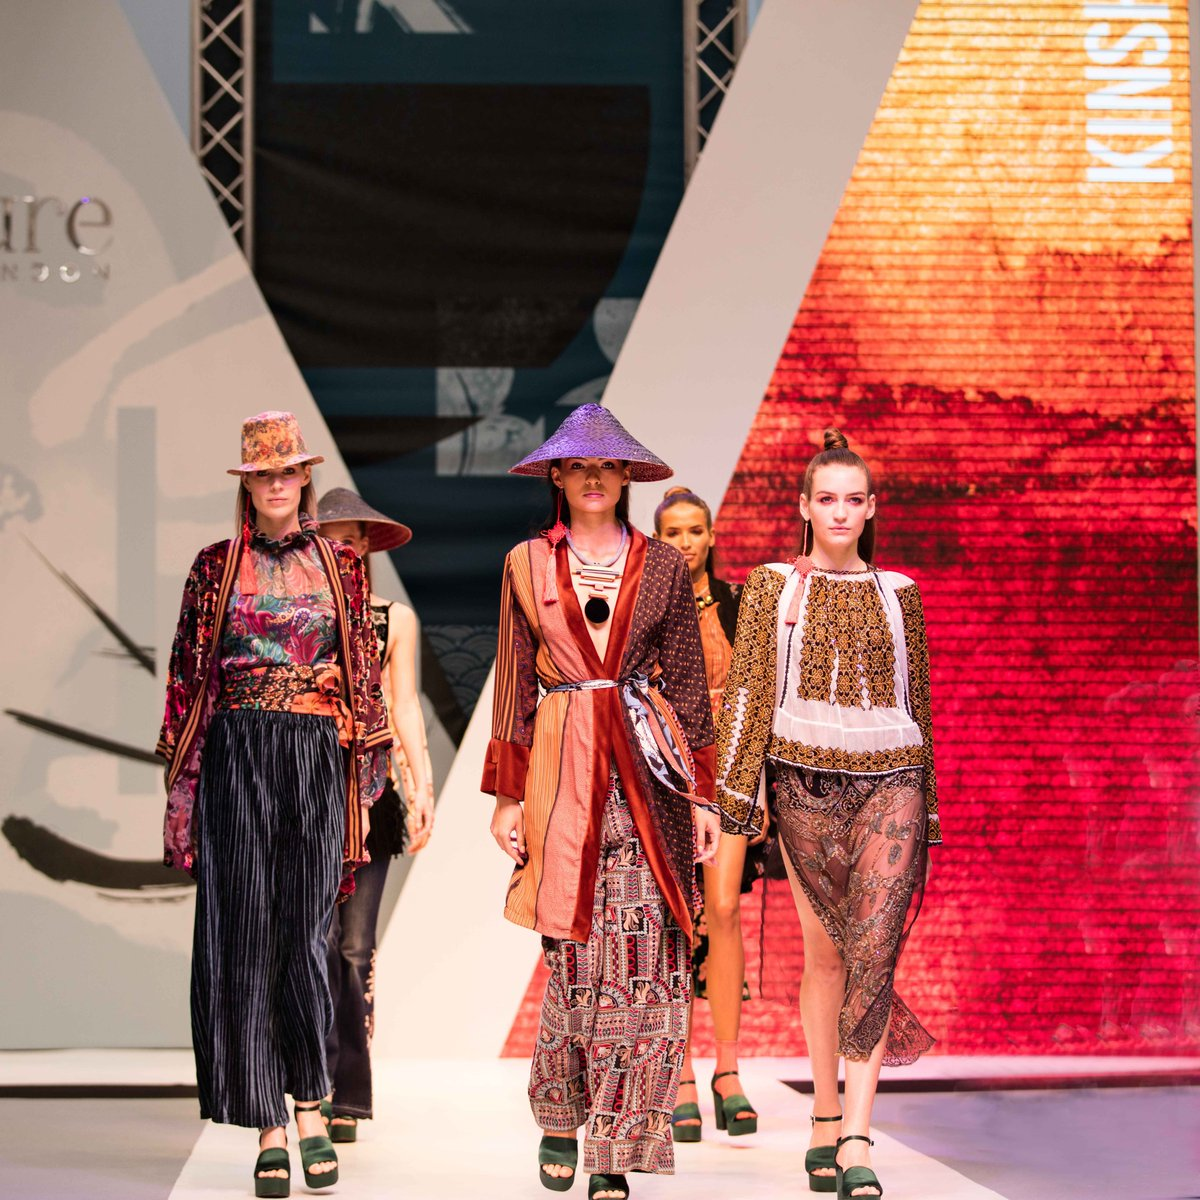 Pure London 2017 Izabela Mandoiu